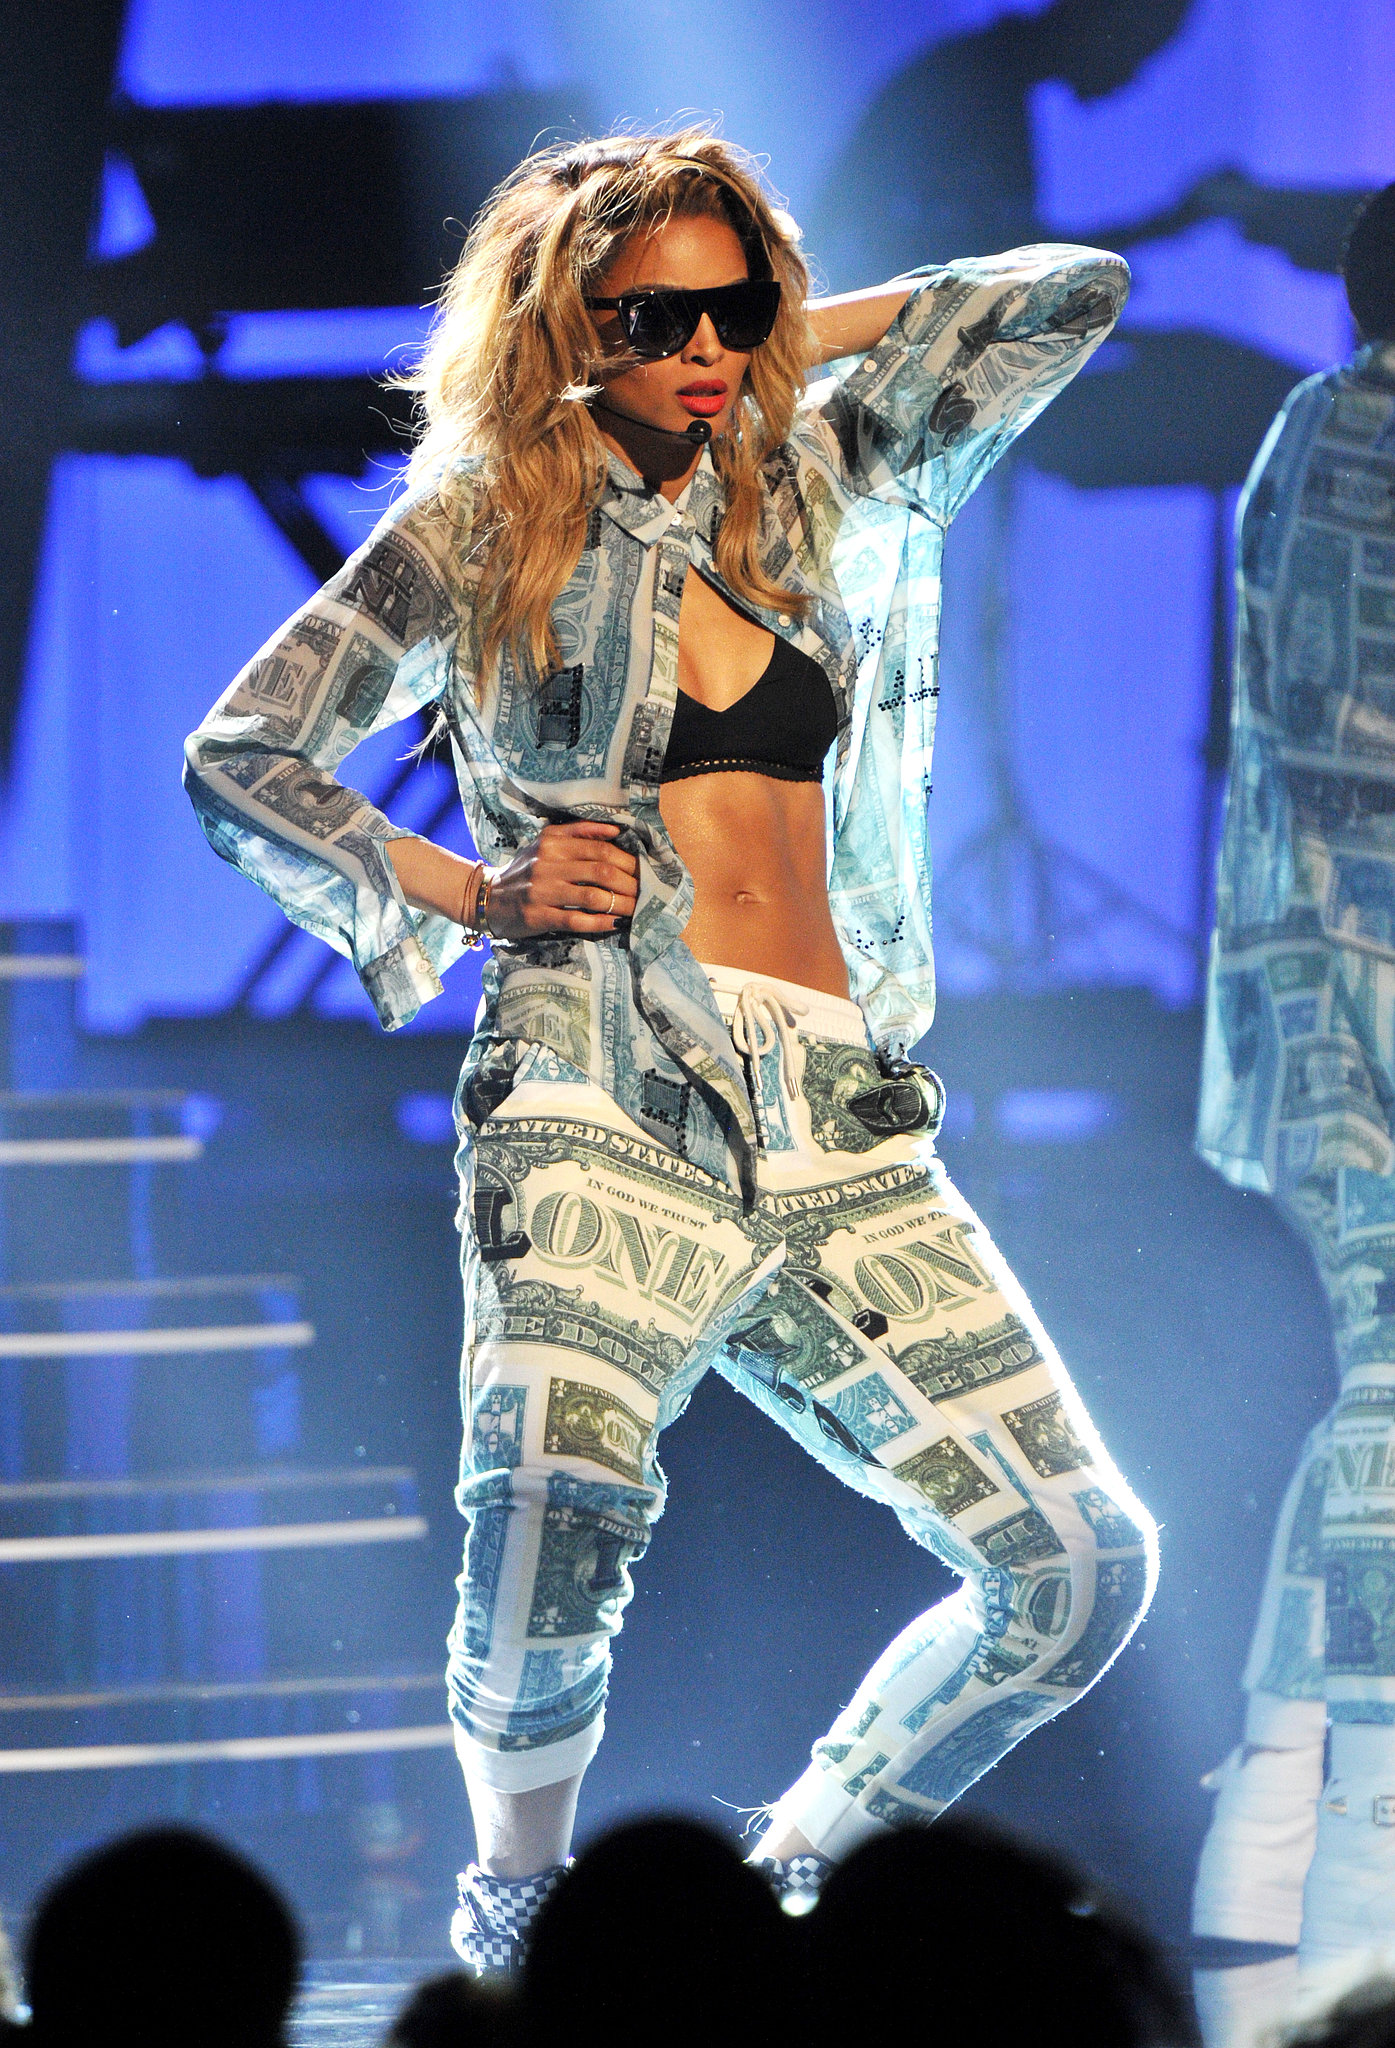 Ciara bared her stomach while performing.